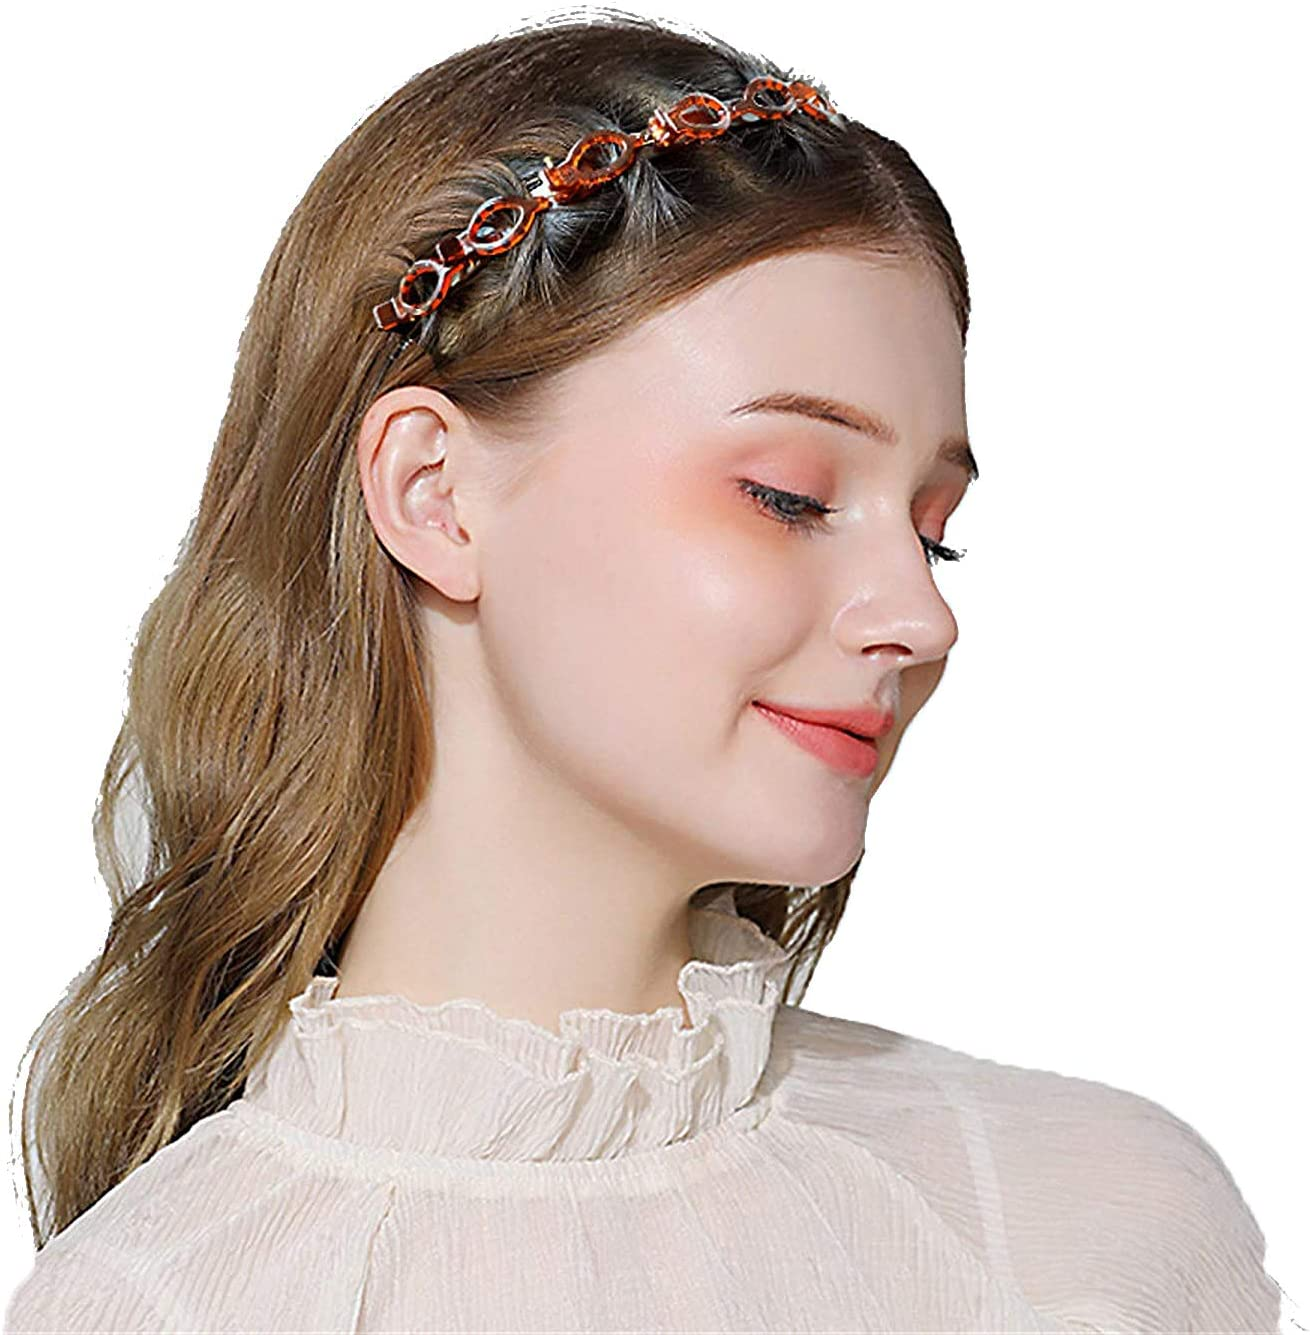 2pcs Hairpin Headbands Twist and Clip Headband//Korean Braided Headband//Hairpin Hair Band//DIY Hairband Non-slip//Double Layer Twist Plait Headband for Women Girls Double Bangs Hairstyle Hairpin